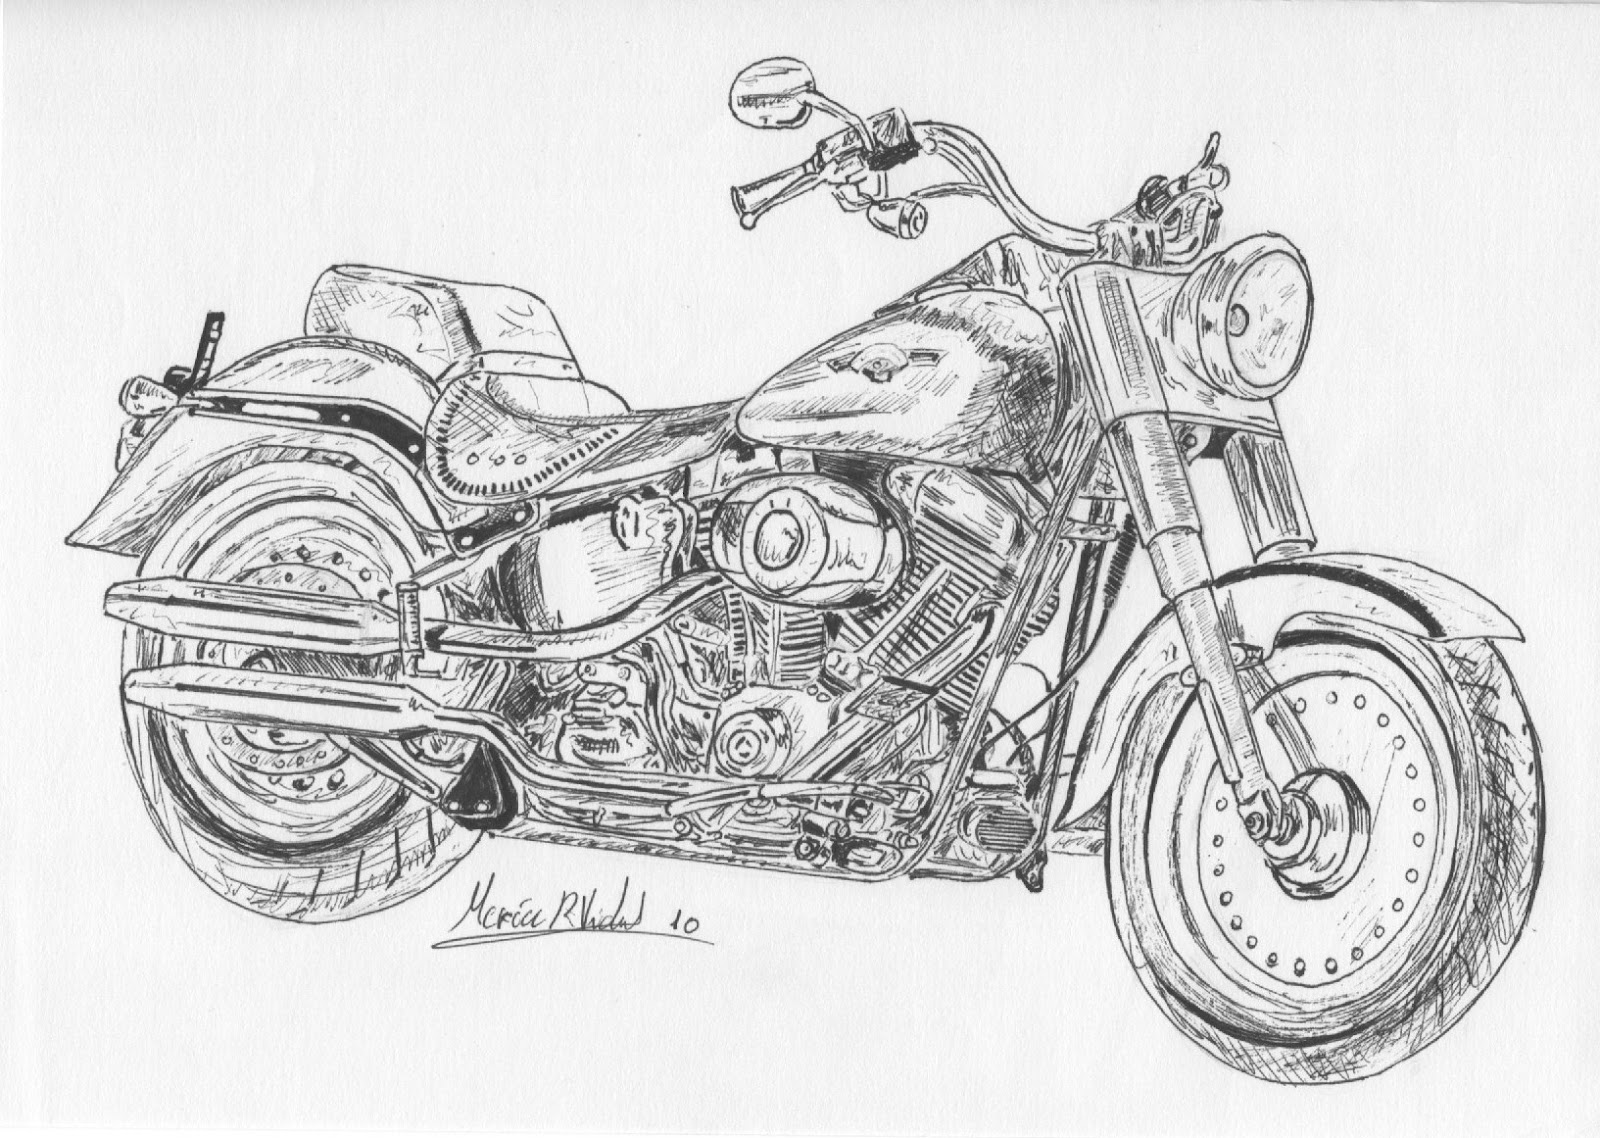 Drawings and sketches while studying: Motorcycle - Hardley ...